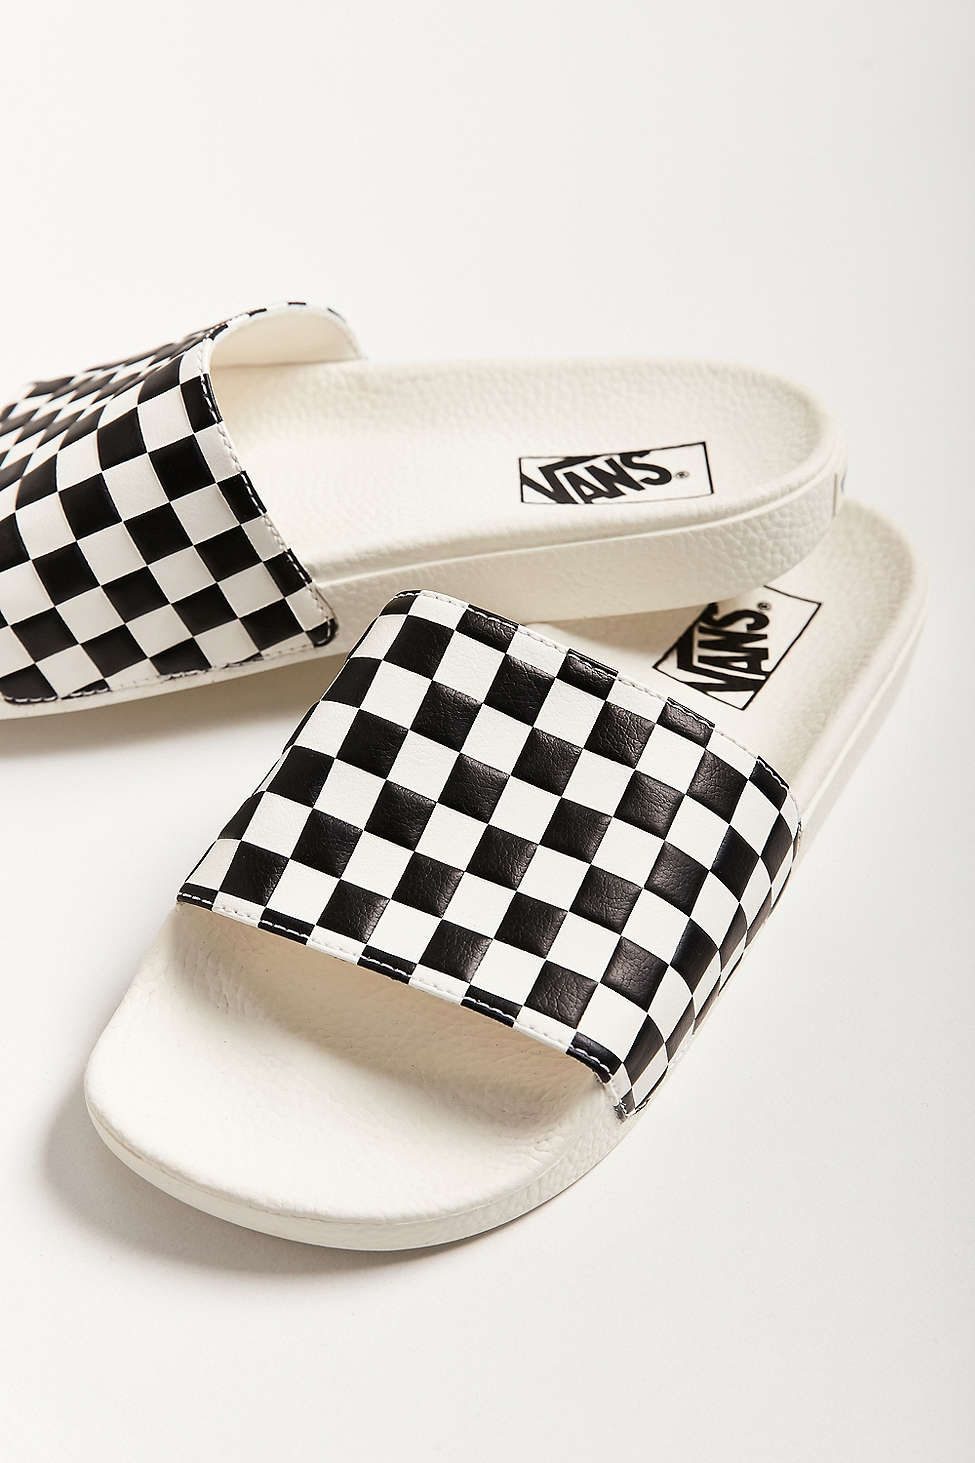 7c3feae13b Vans Checkerboard Pool Slide - Urban Outfitters